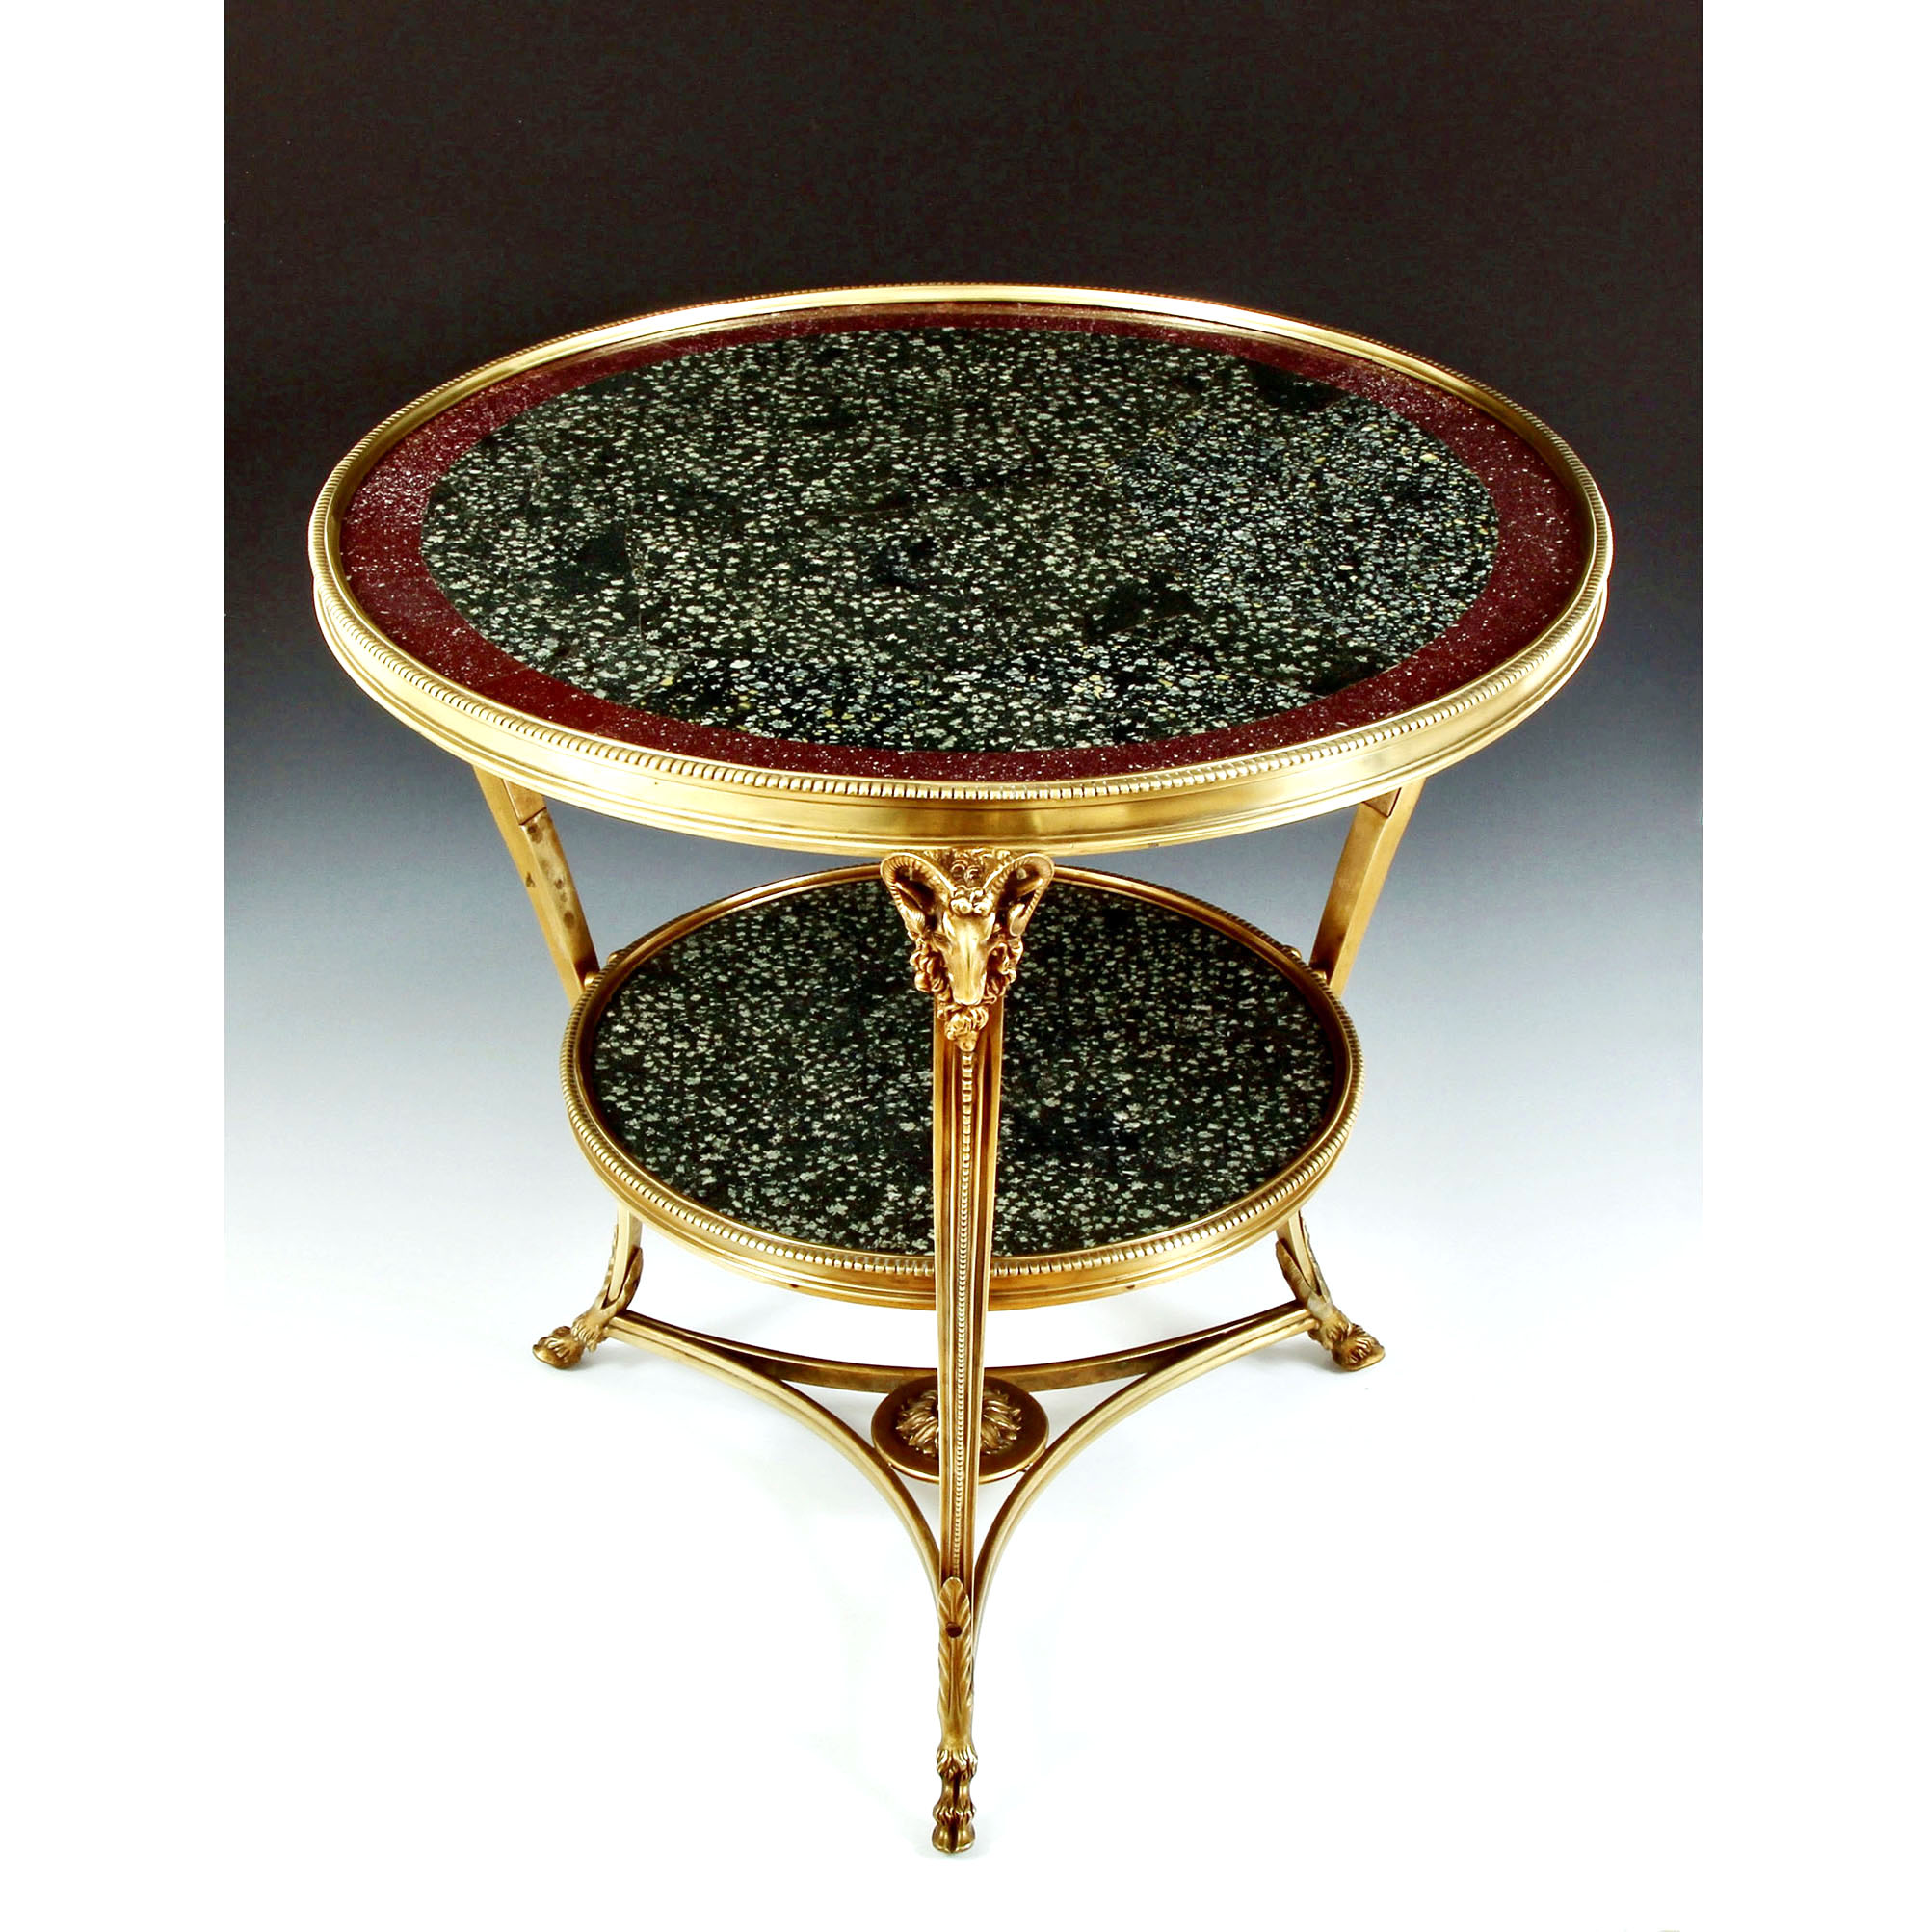 lapis spartanus grecian porphyry imperial egyptian porphyry centre table